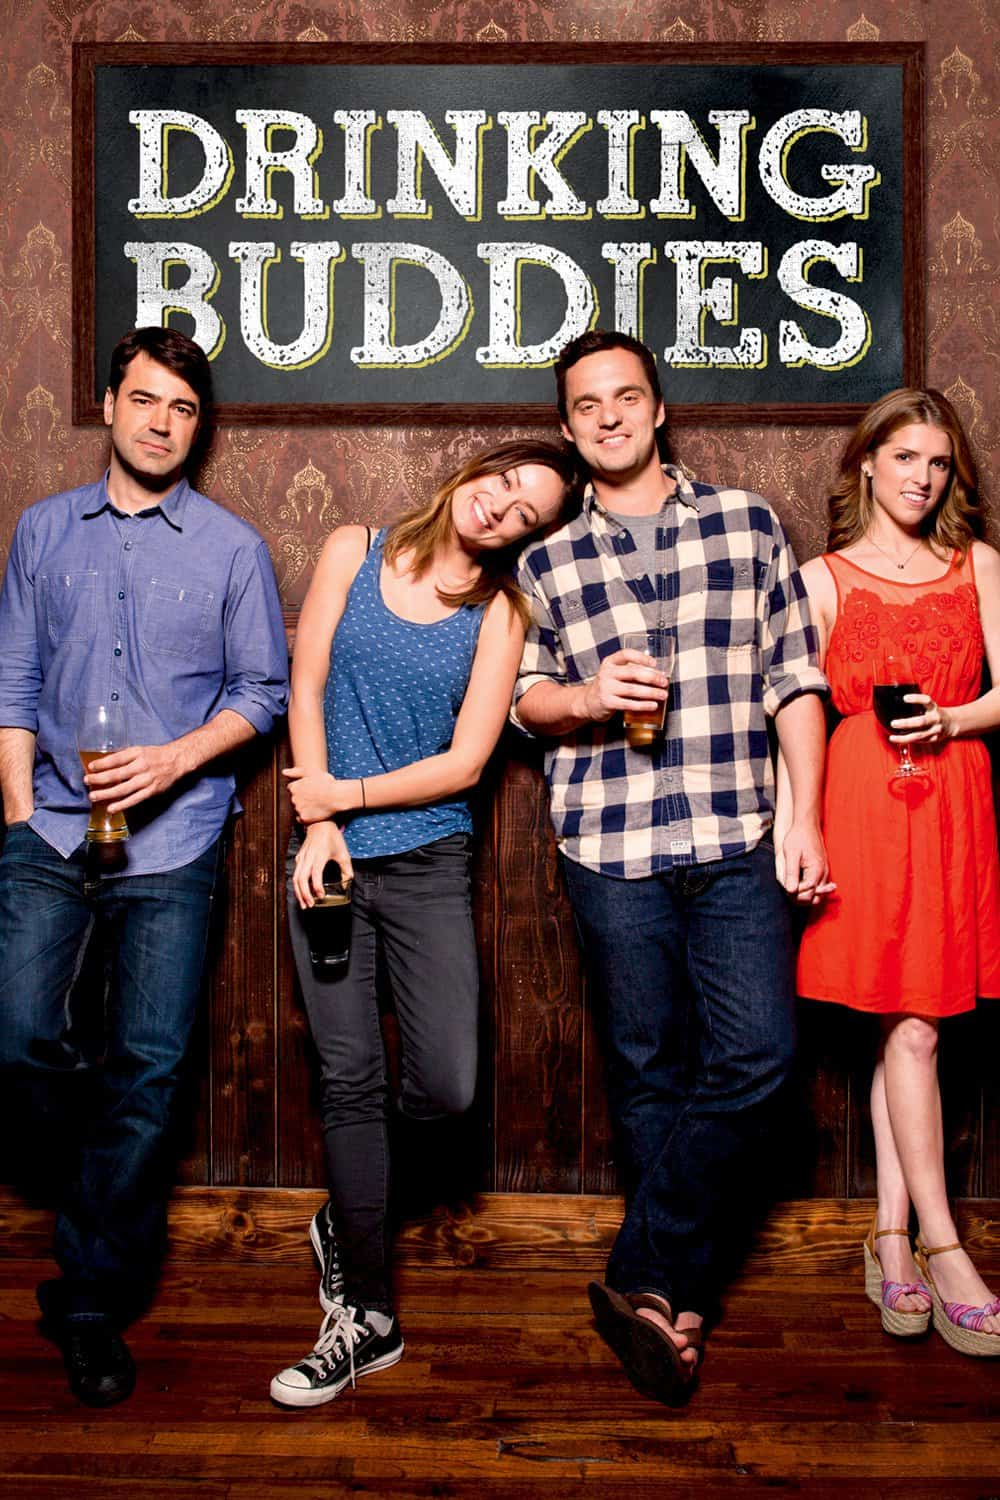 Drinking Buddies, 2013